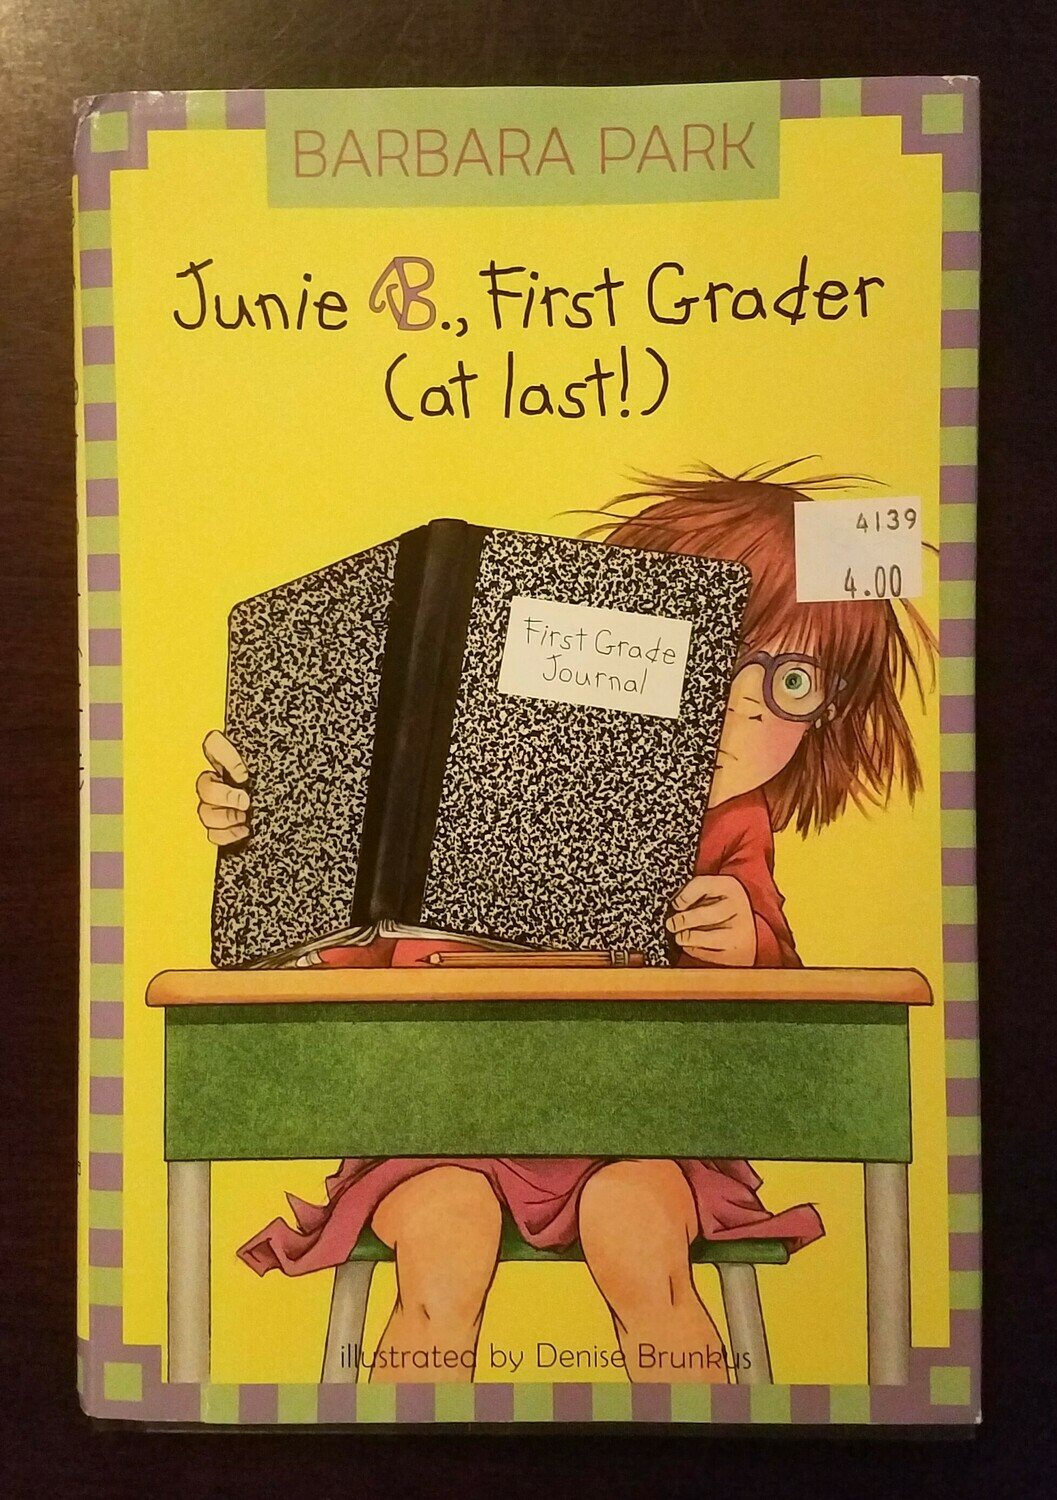 Junie B., First Grader (At Last!) by Barbara Park and Denise Brunkus